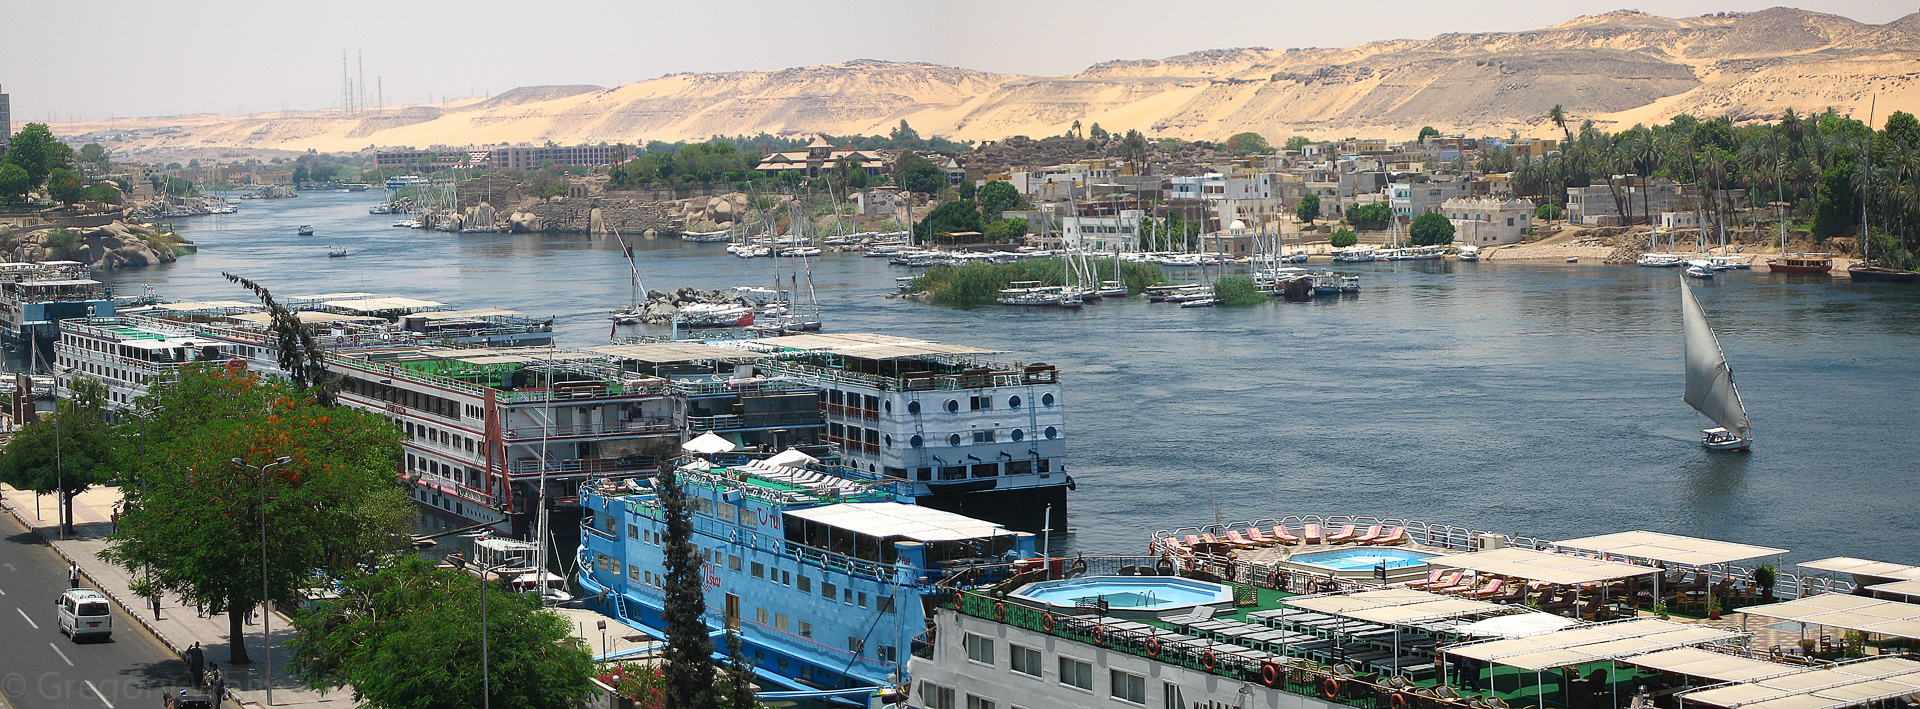 The great Nile winds through Aswan.